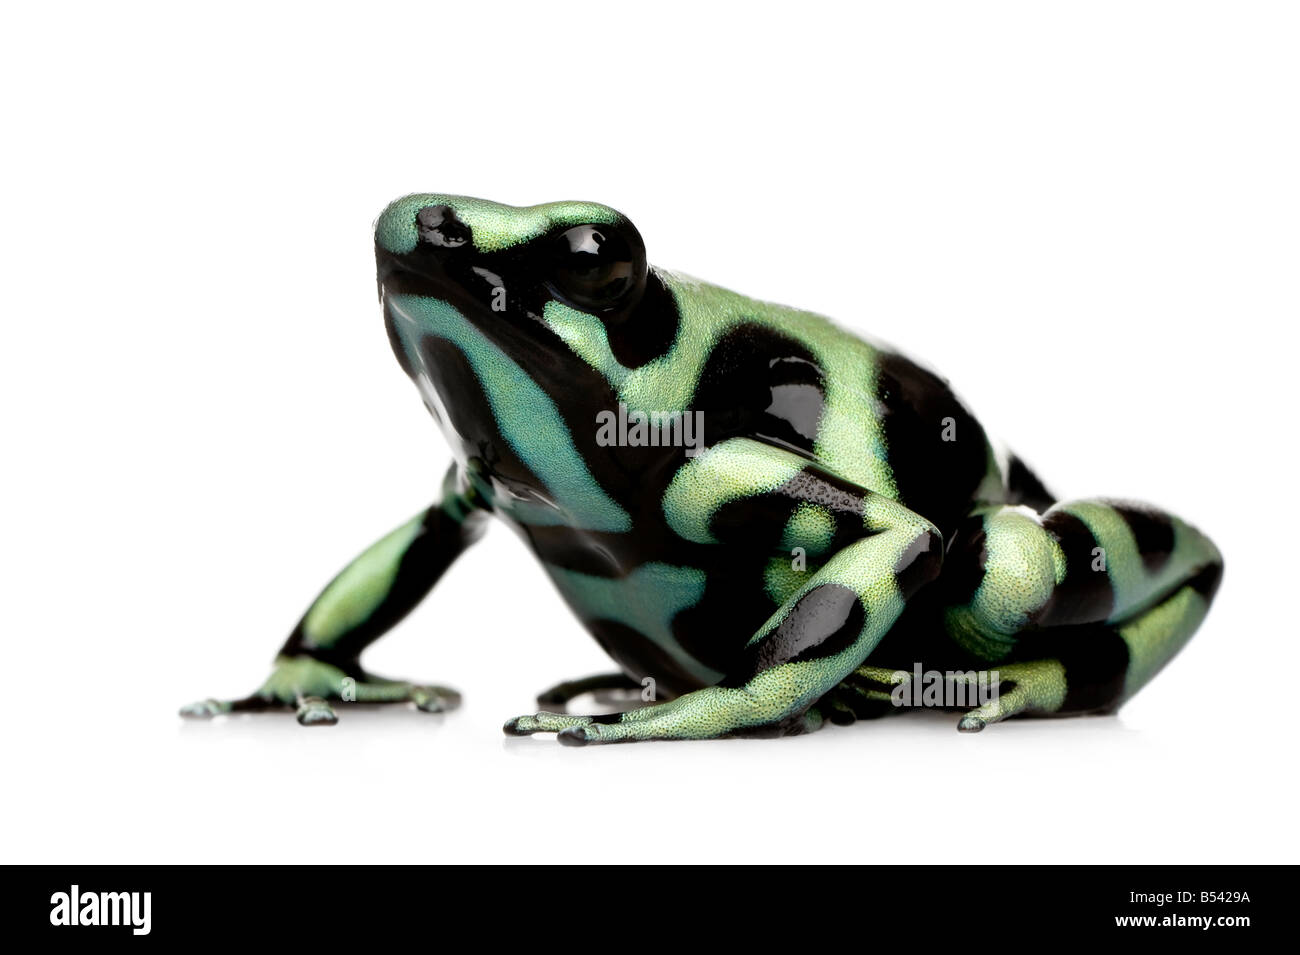 green and Black Poison Dart Frog Dendrobates auratus in front of a white background - Stock Image